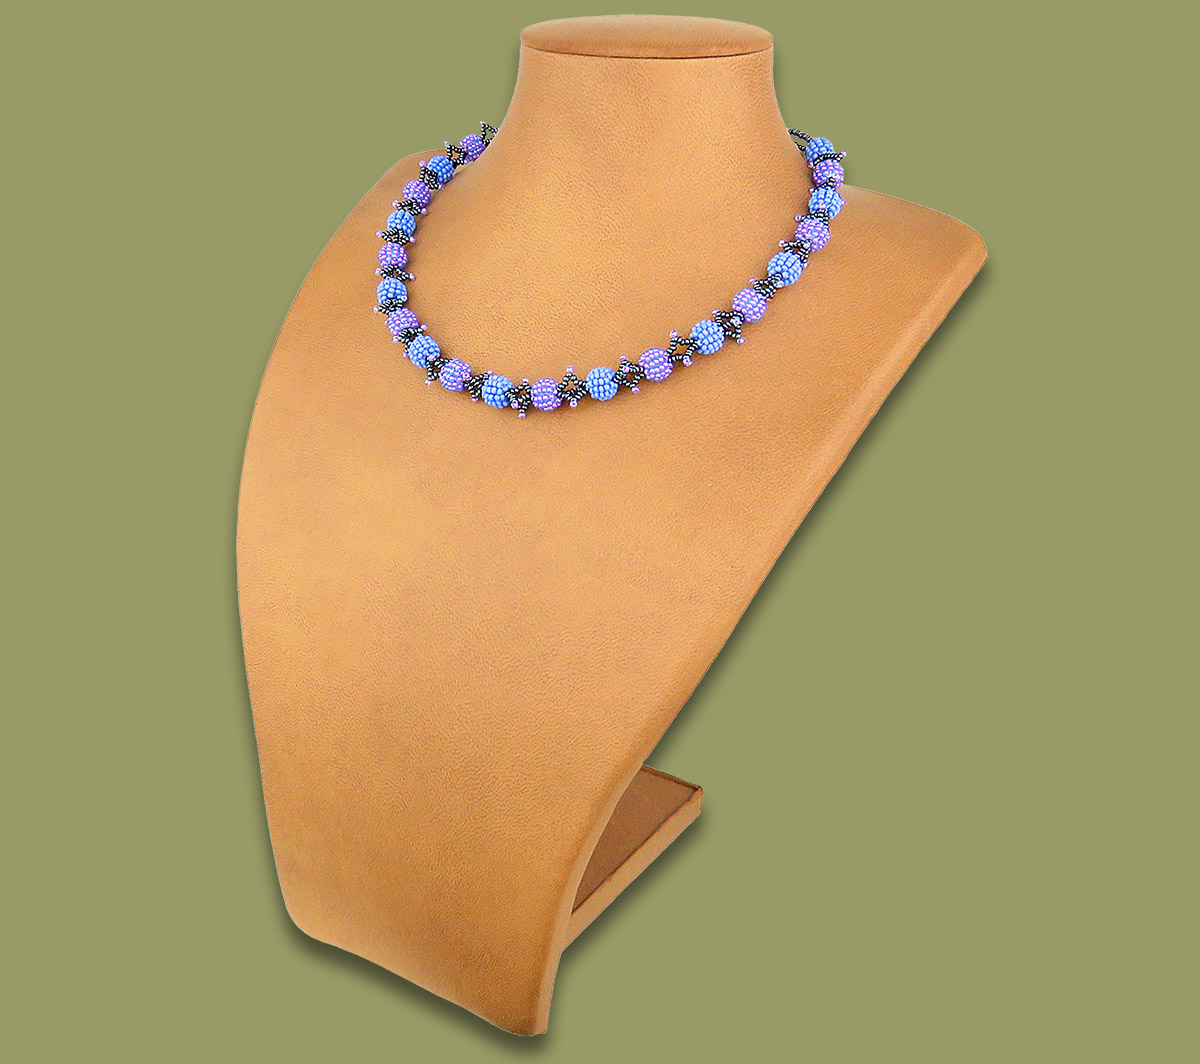 African Beaded Necklace Small Bobble Lillac Blue Metallic